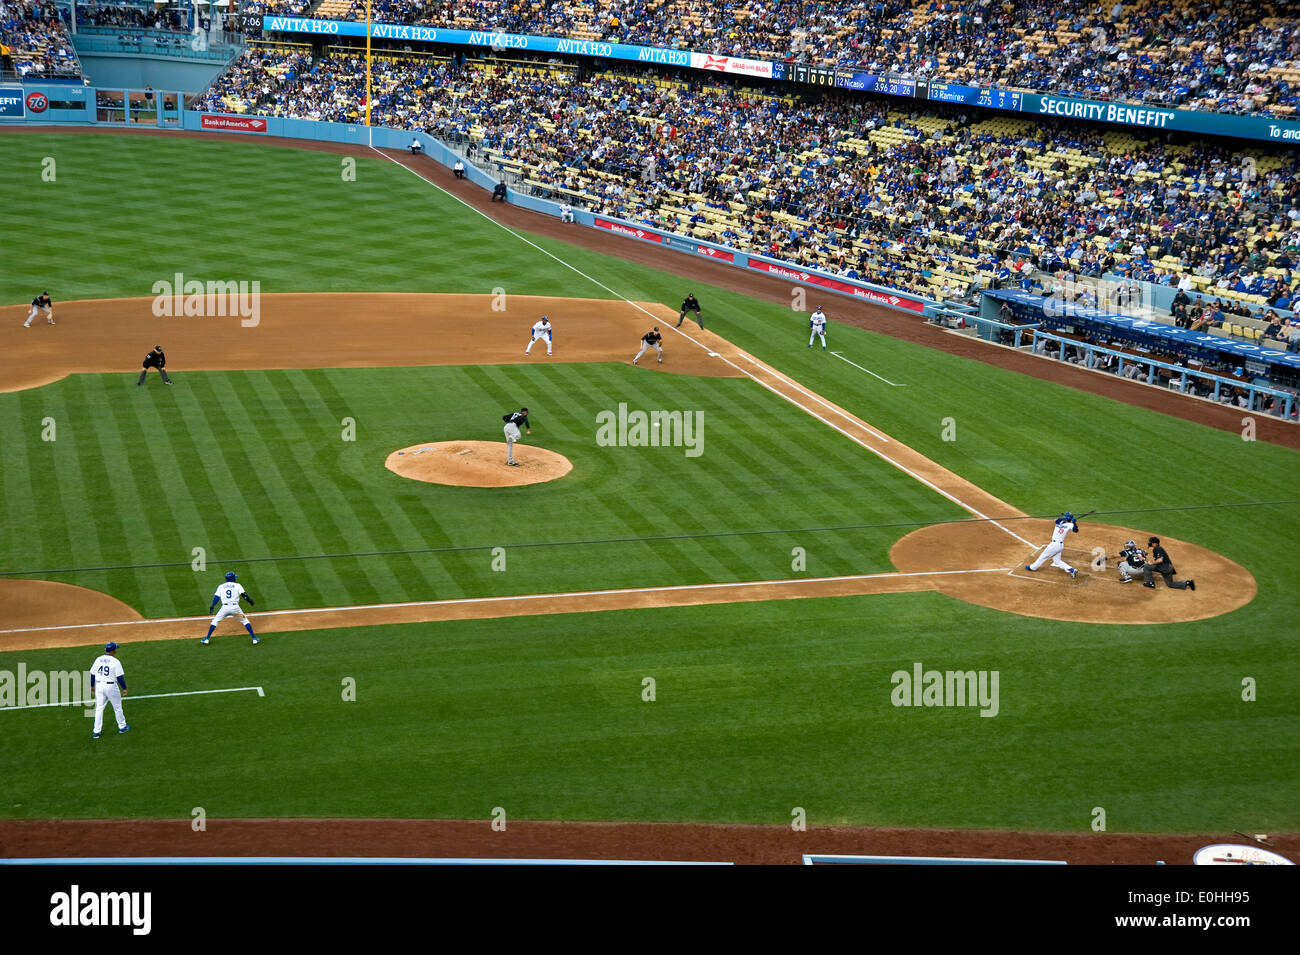 Jeu de base-ball au Dodger Stadium. Photo Stock